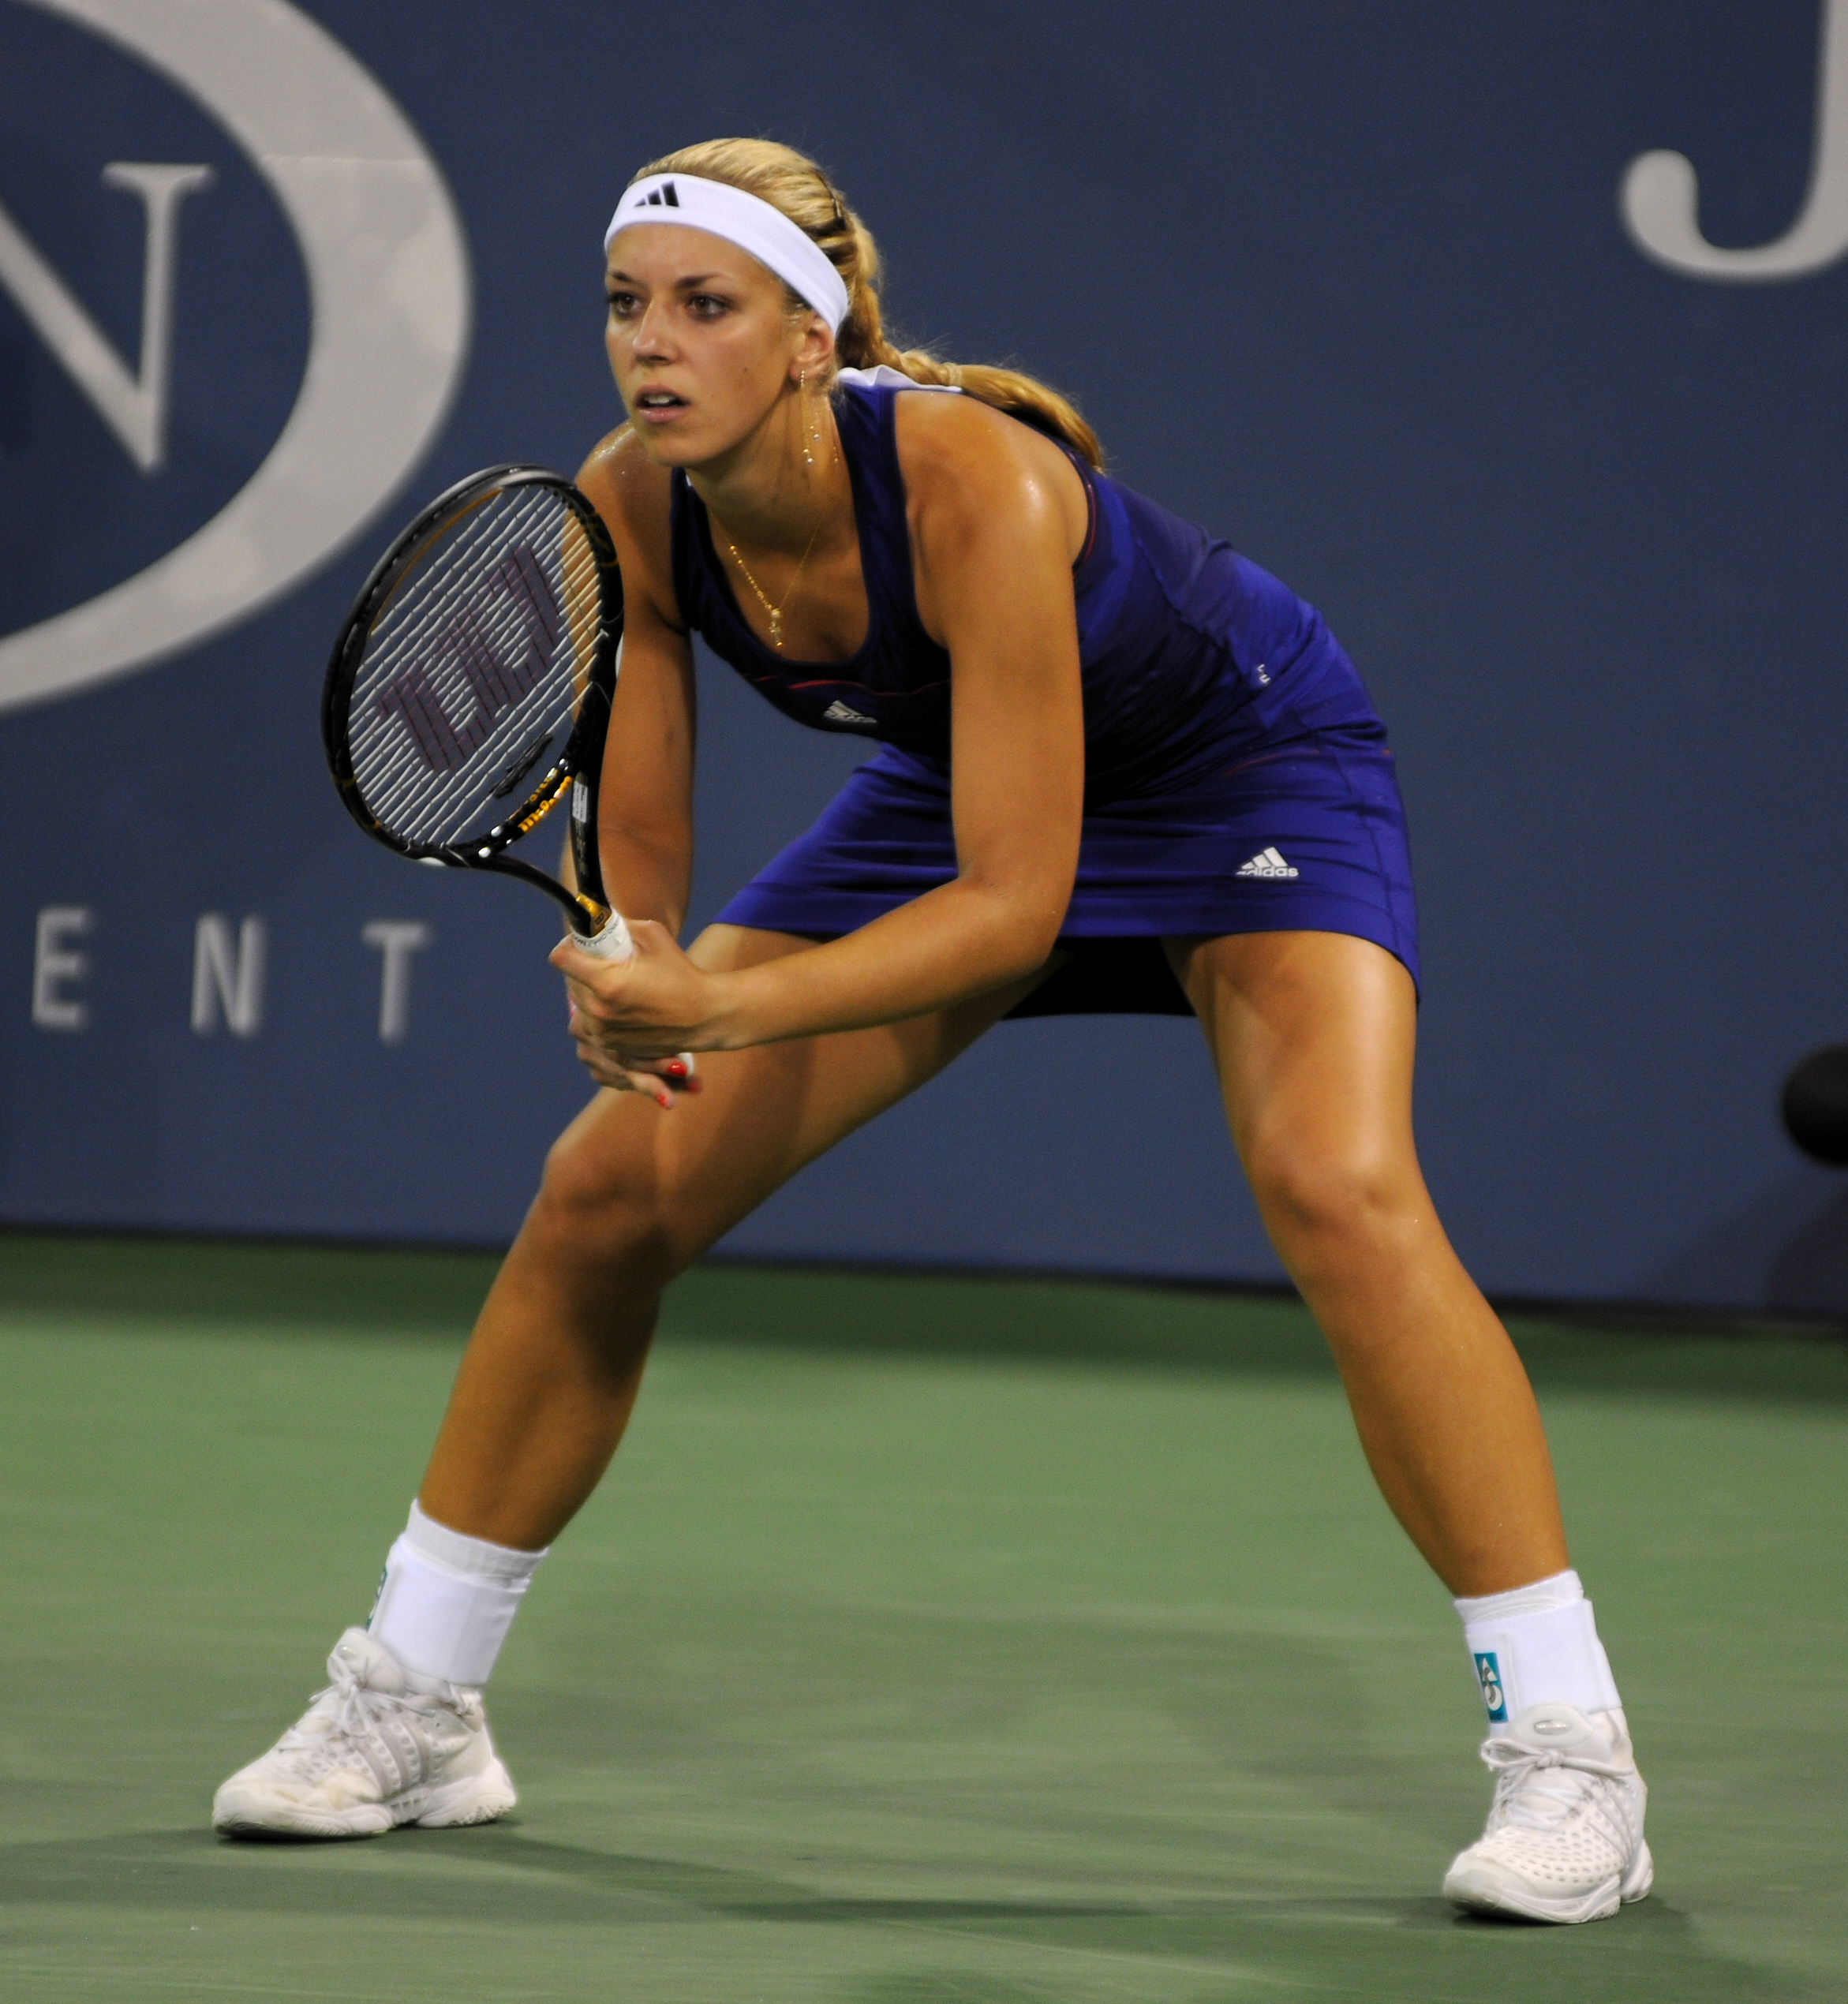 File:Sabine Lisicki at the 2010 US Open 02.jpg - Wikimedia Commons